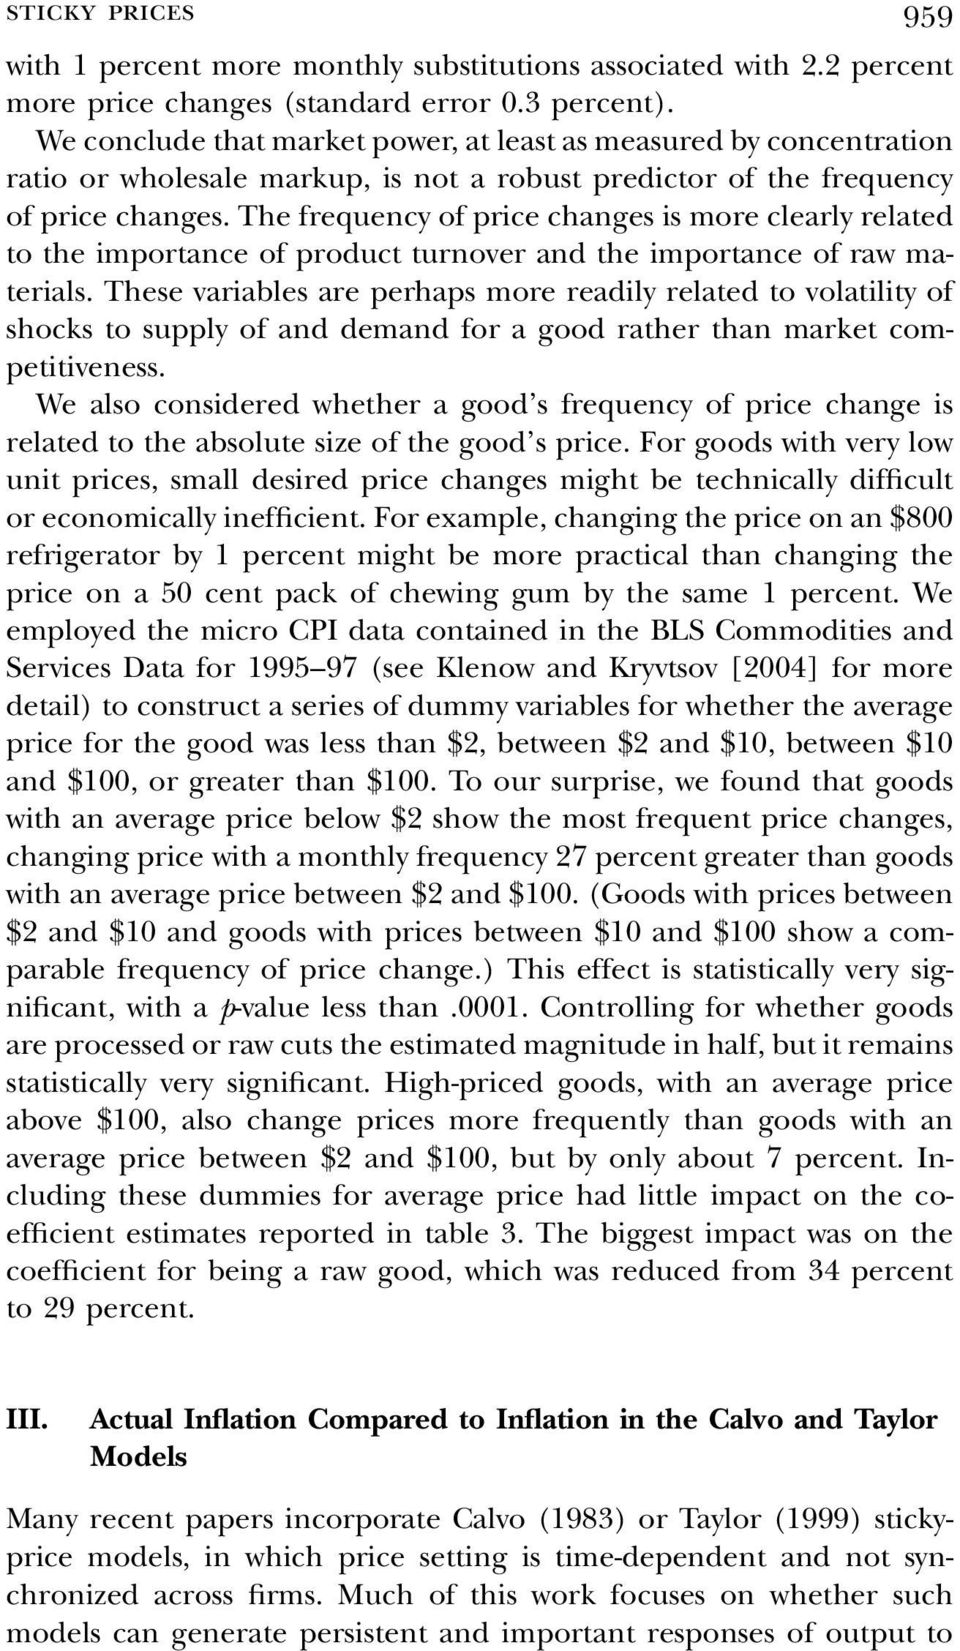 The frequency of price changes is more clearly related to the importance of product turnover and the importance of raw materials.